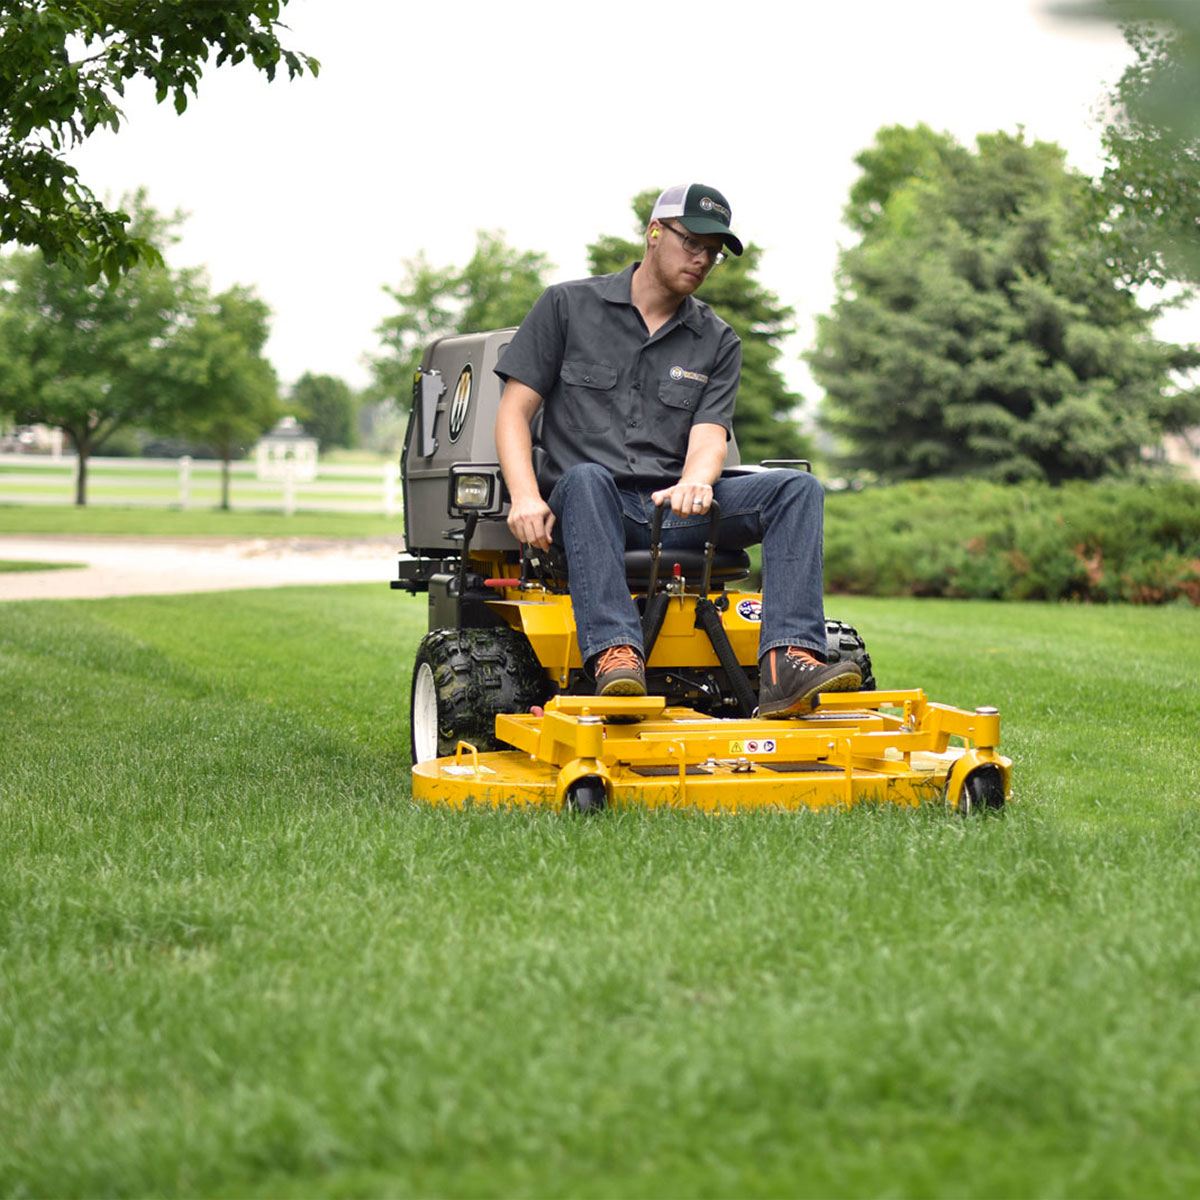 Walker Mower MC19 mowing landscape